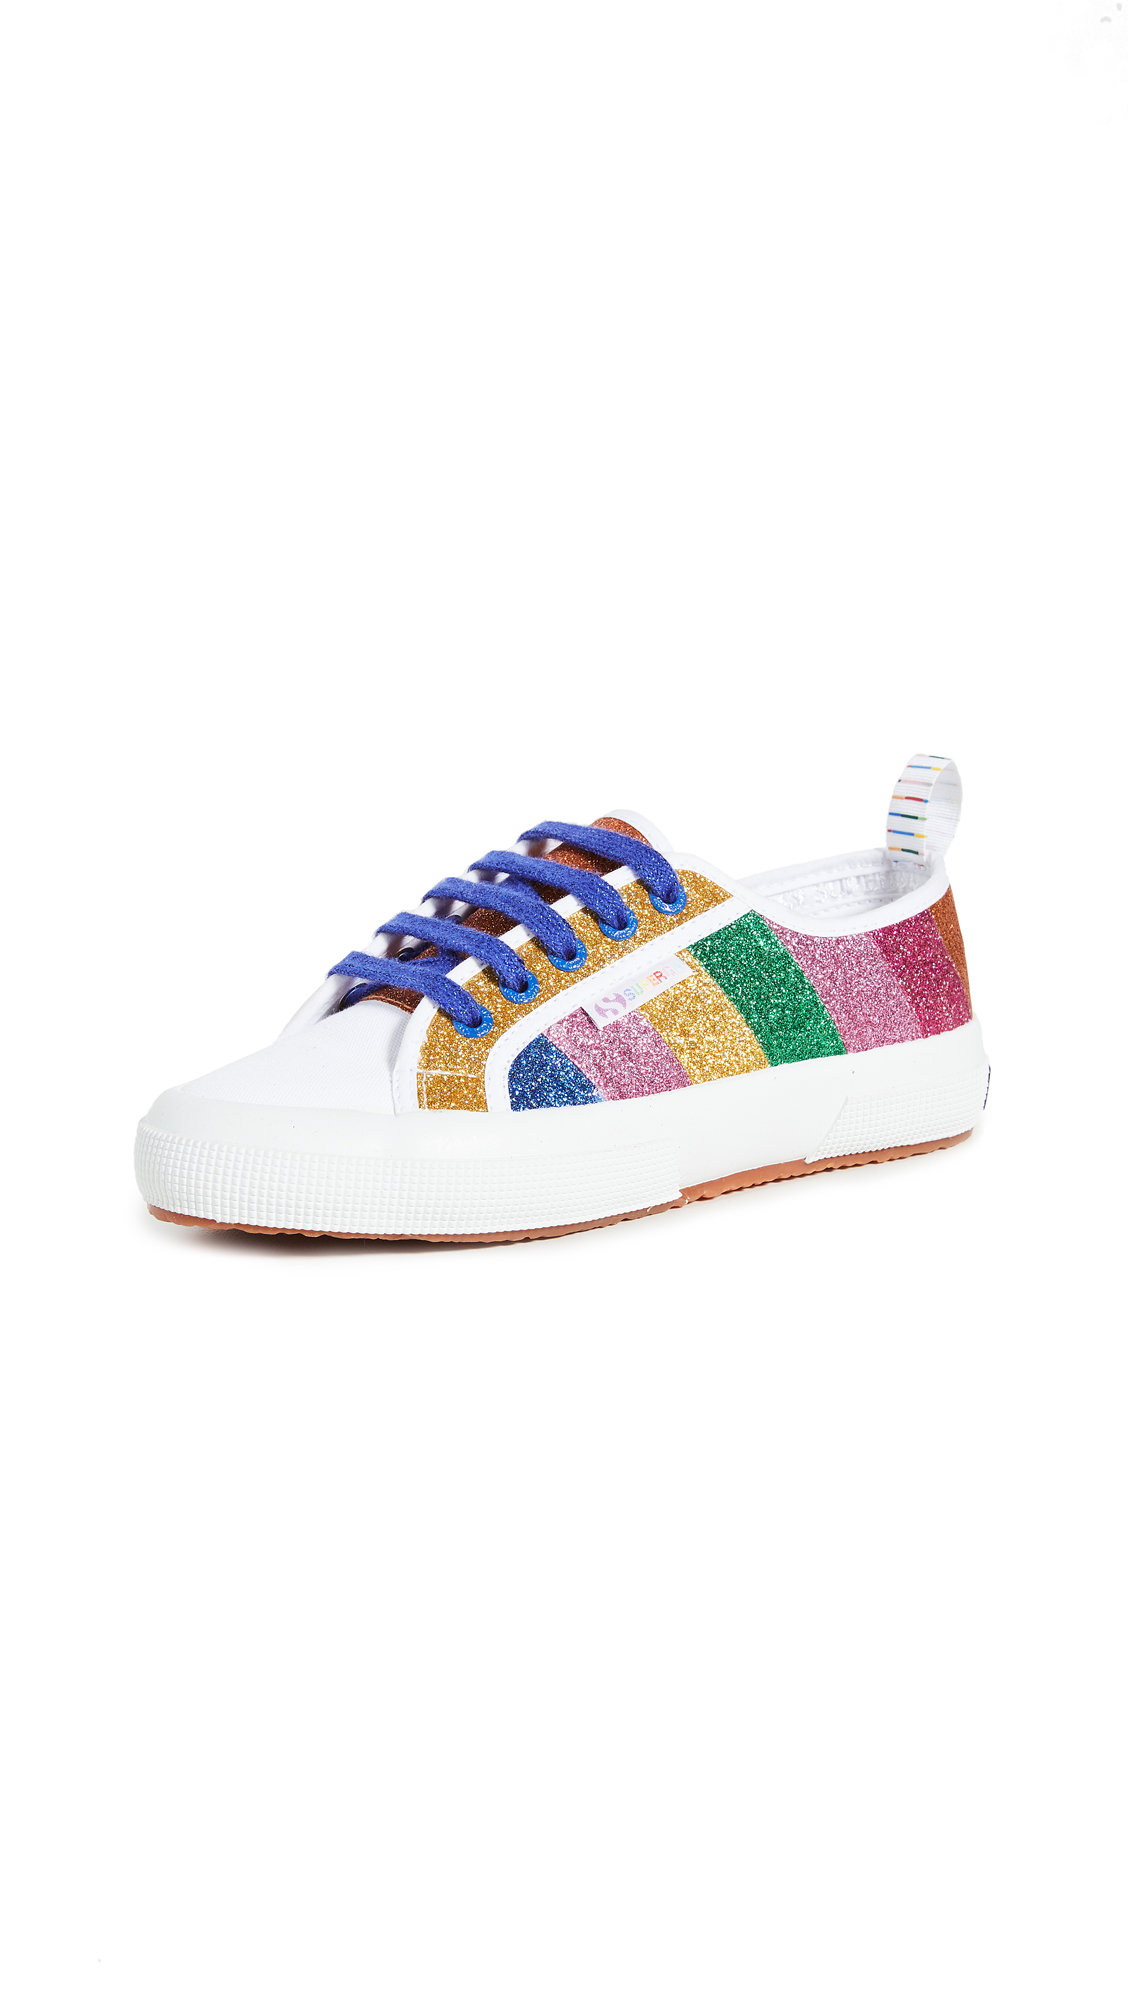 Mira Mikati x Superga Glitter Stripe Sneakers - 50% Off Sale